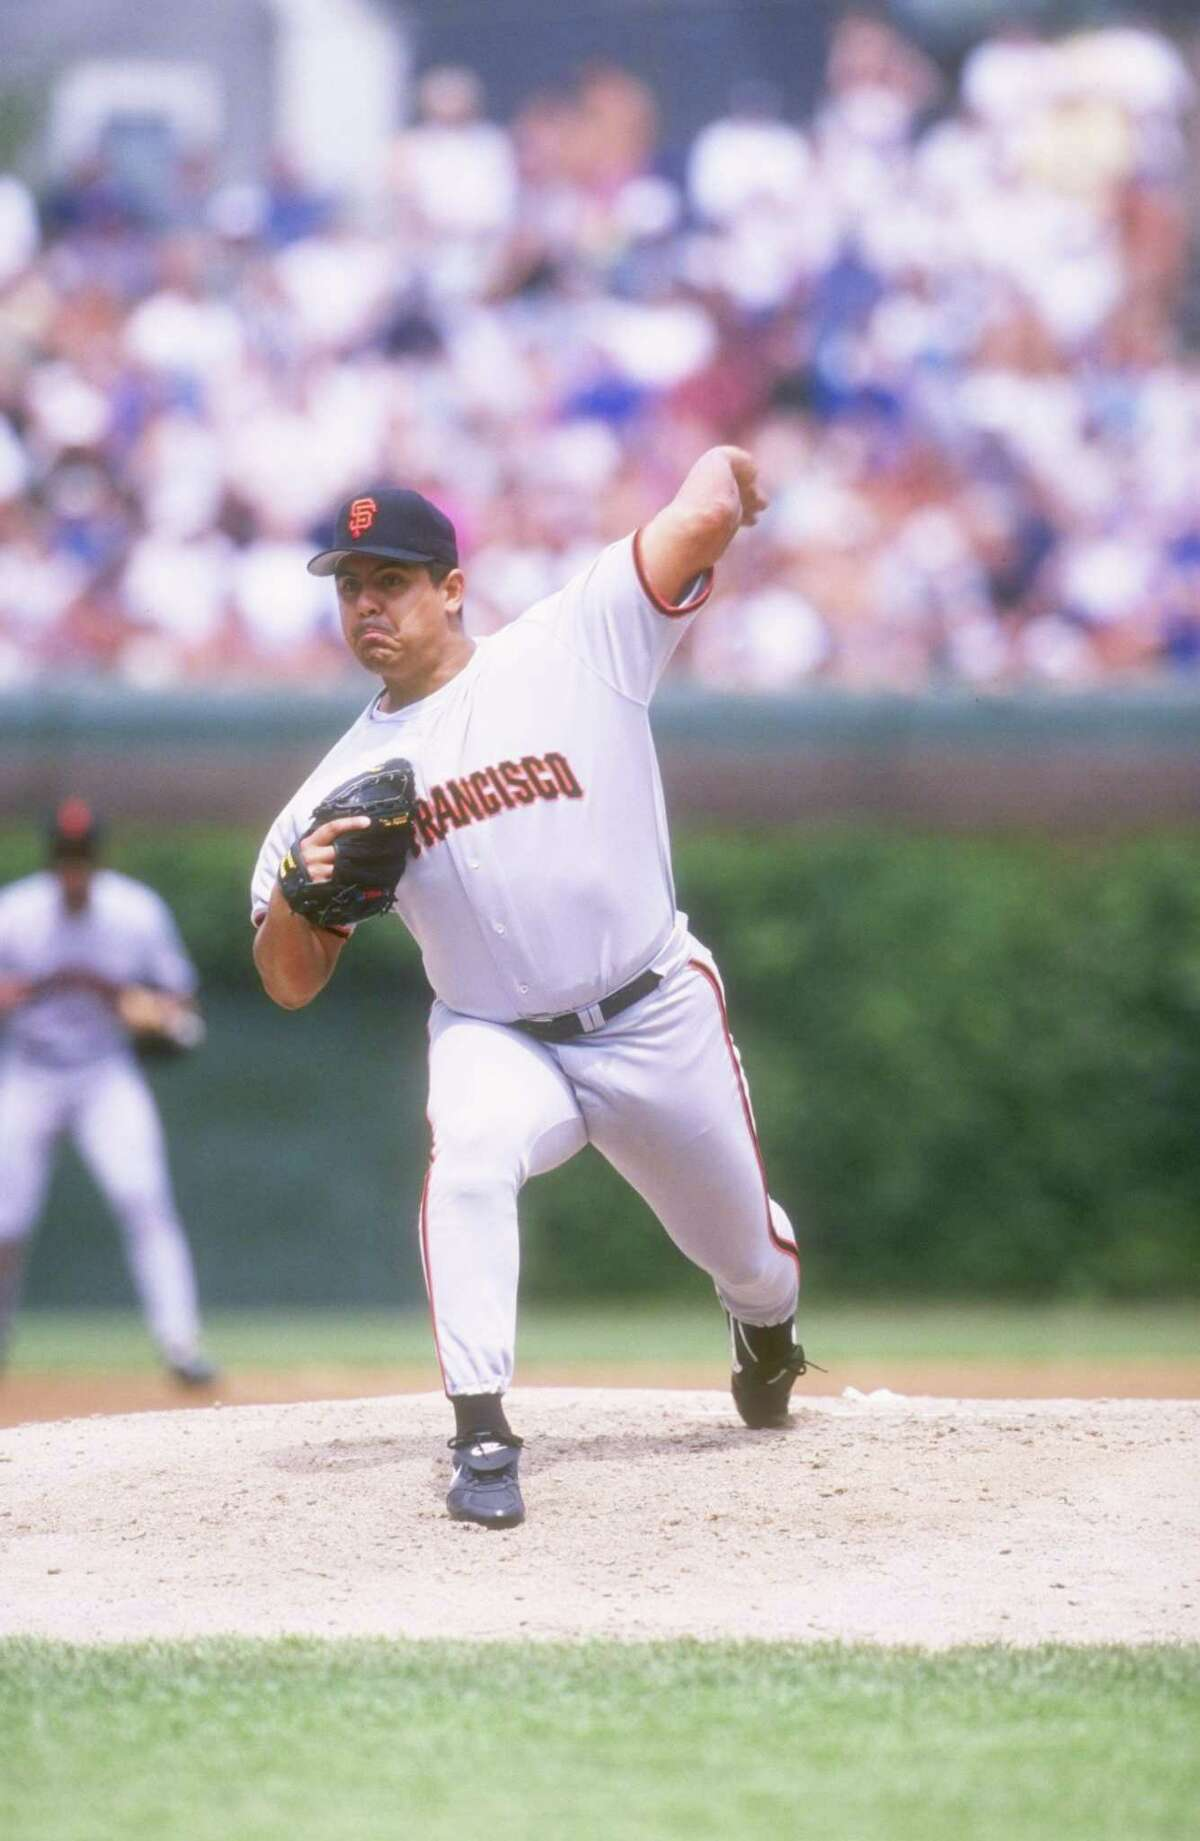 7 Aug 1997: Pitcher Wilson Alvarez of the San Francisco Giants throws a pitch during the Giants 6-3 loss to the Chicago Cubs at Wrigley Field in Chicago, Illinois. Mandatory Credit: Jonathan Daniel /Allsport